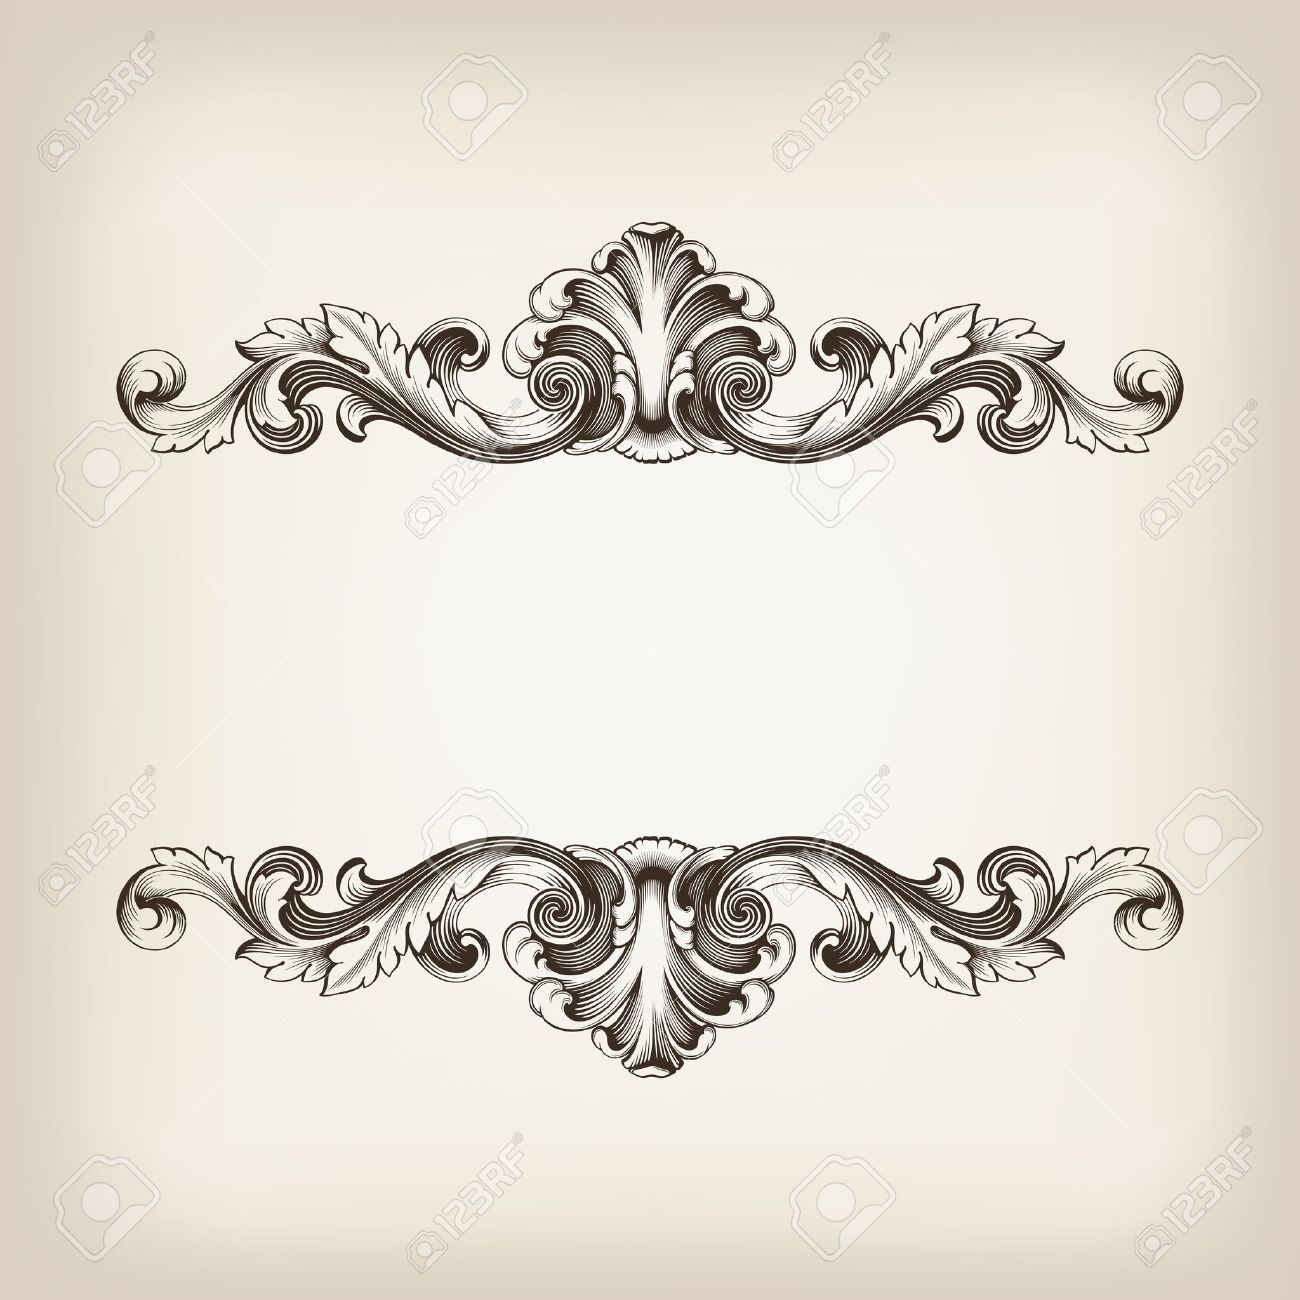 vector vintage border frame filigree engraving with retro ornament pattern in antique baroque style ornate decorative antique calligraphy design